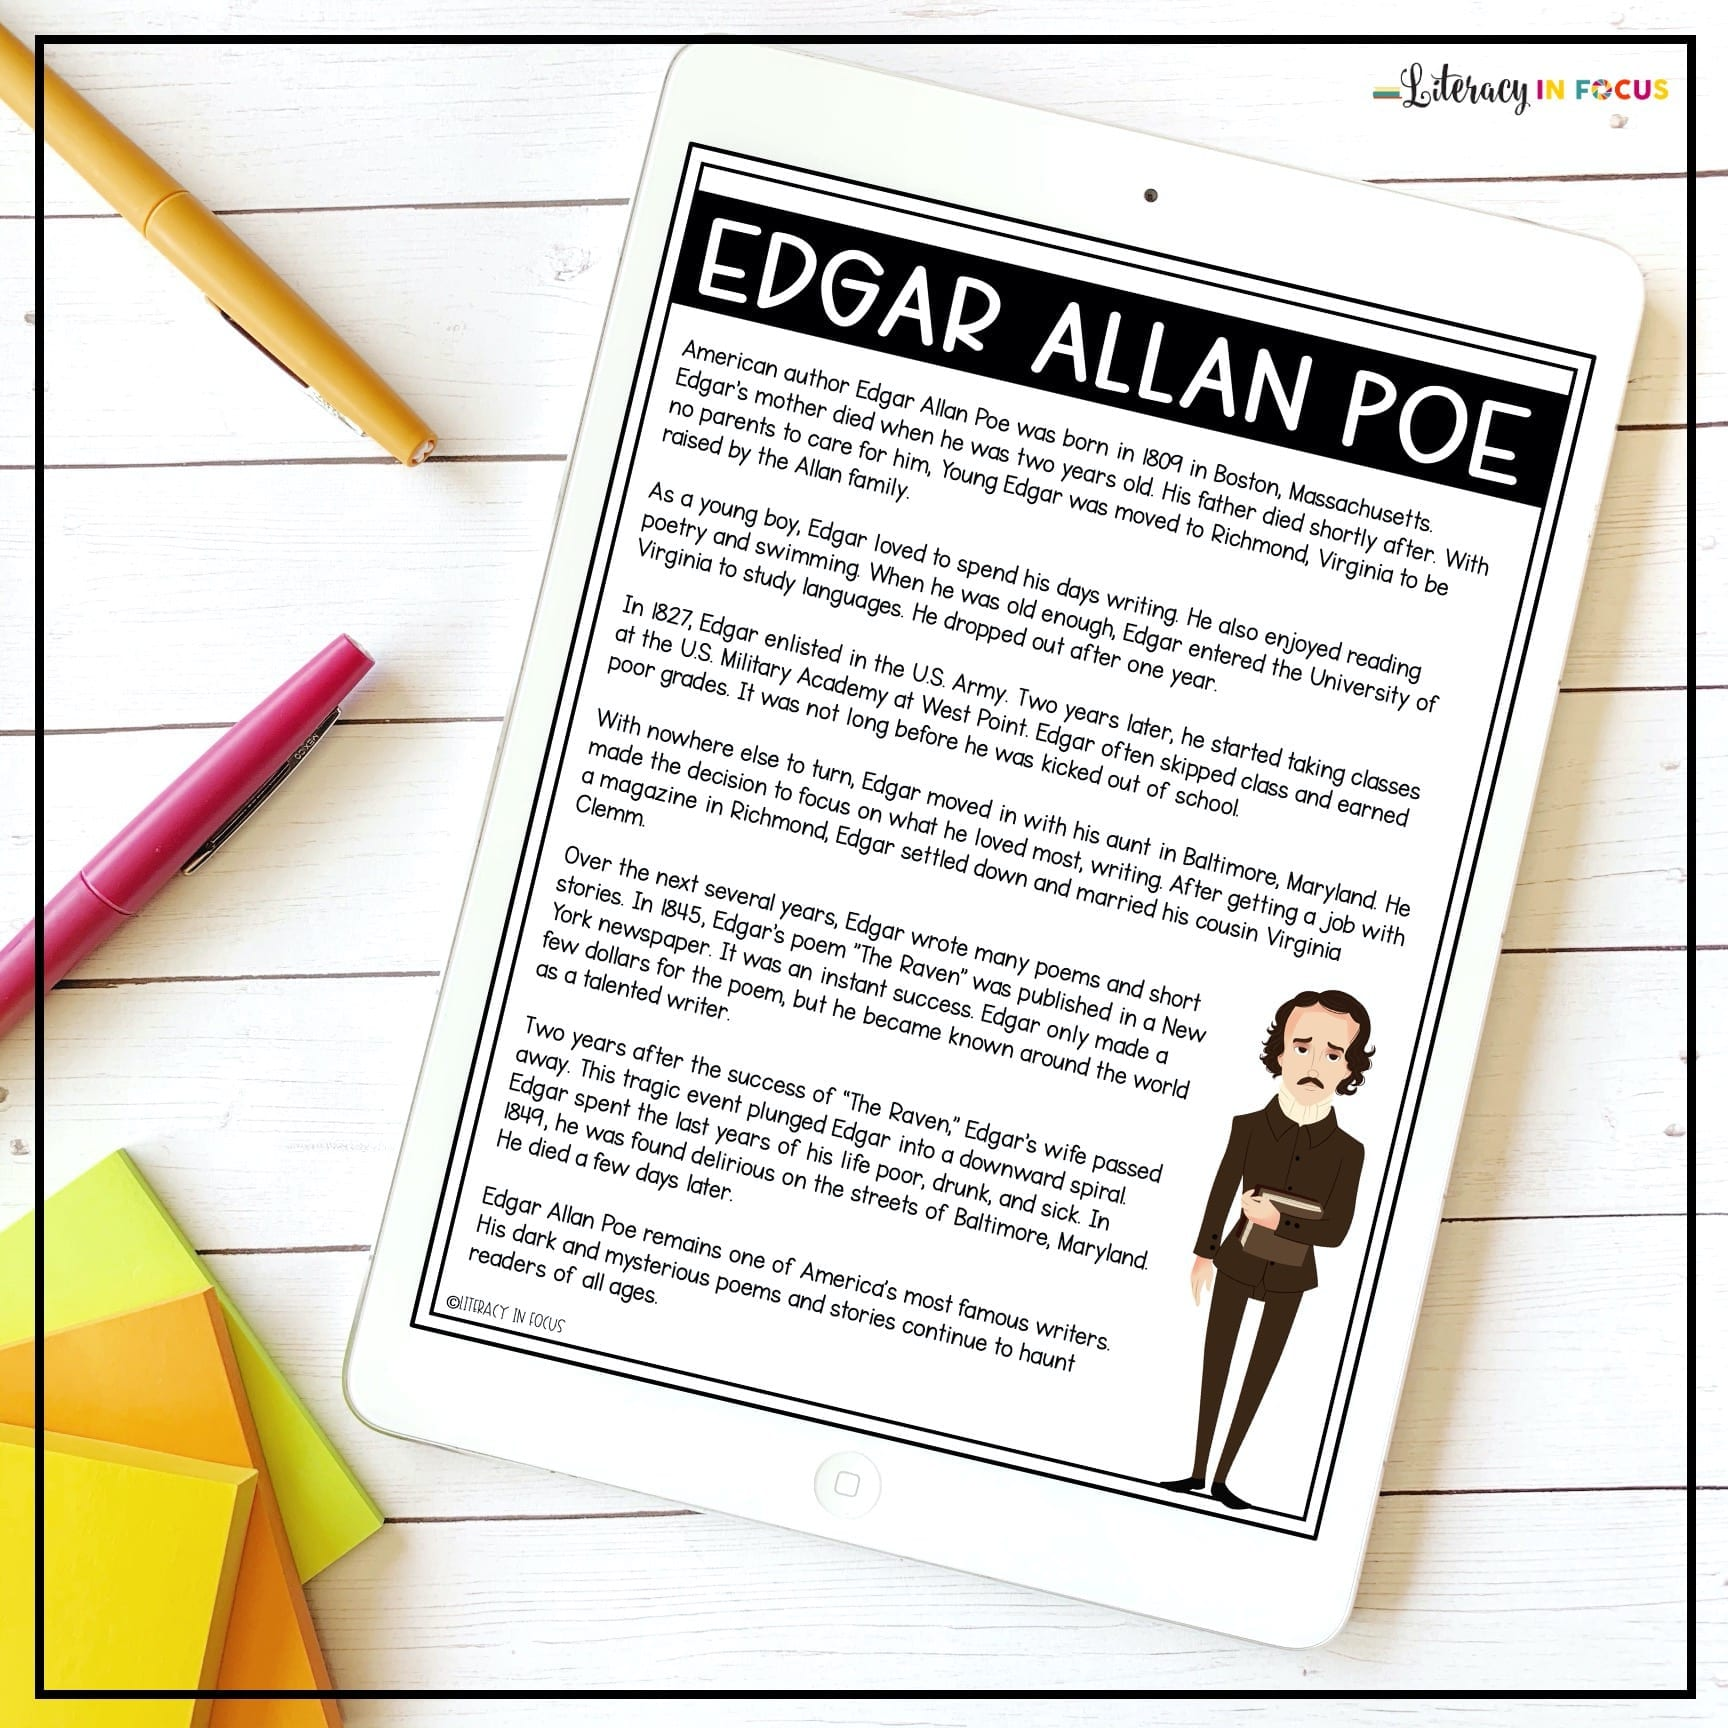 Edgar Allan Poe Biography Free Printable